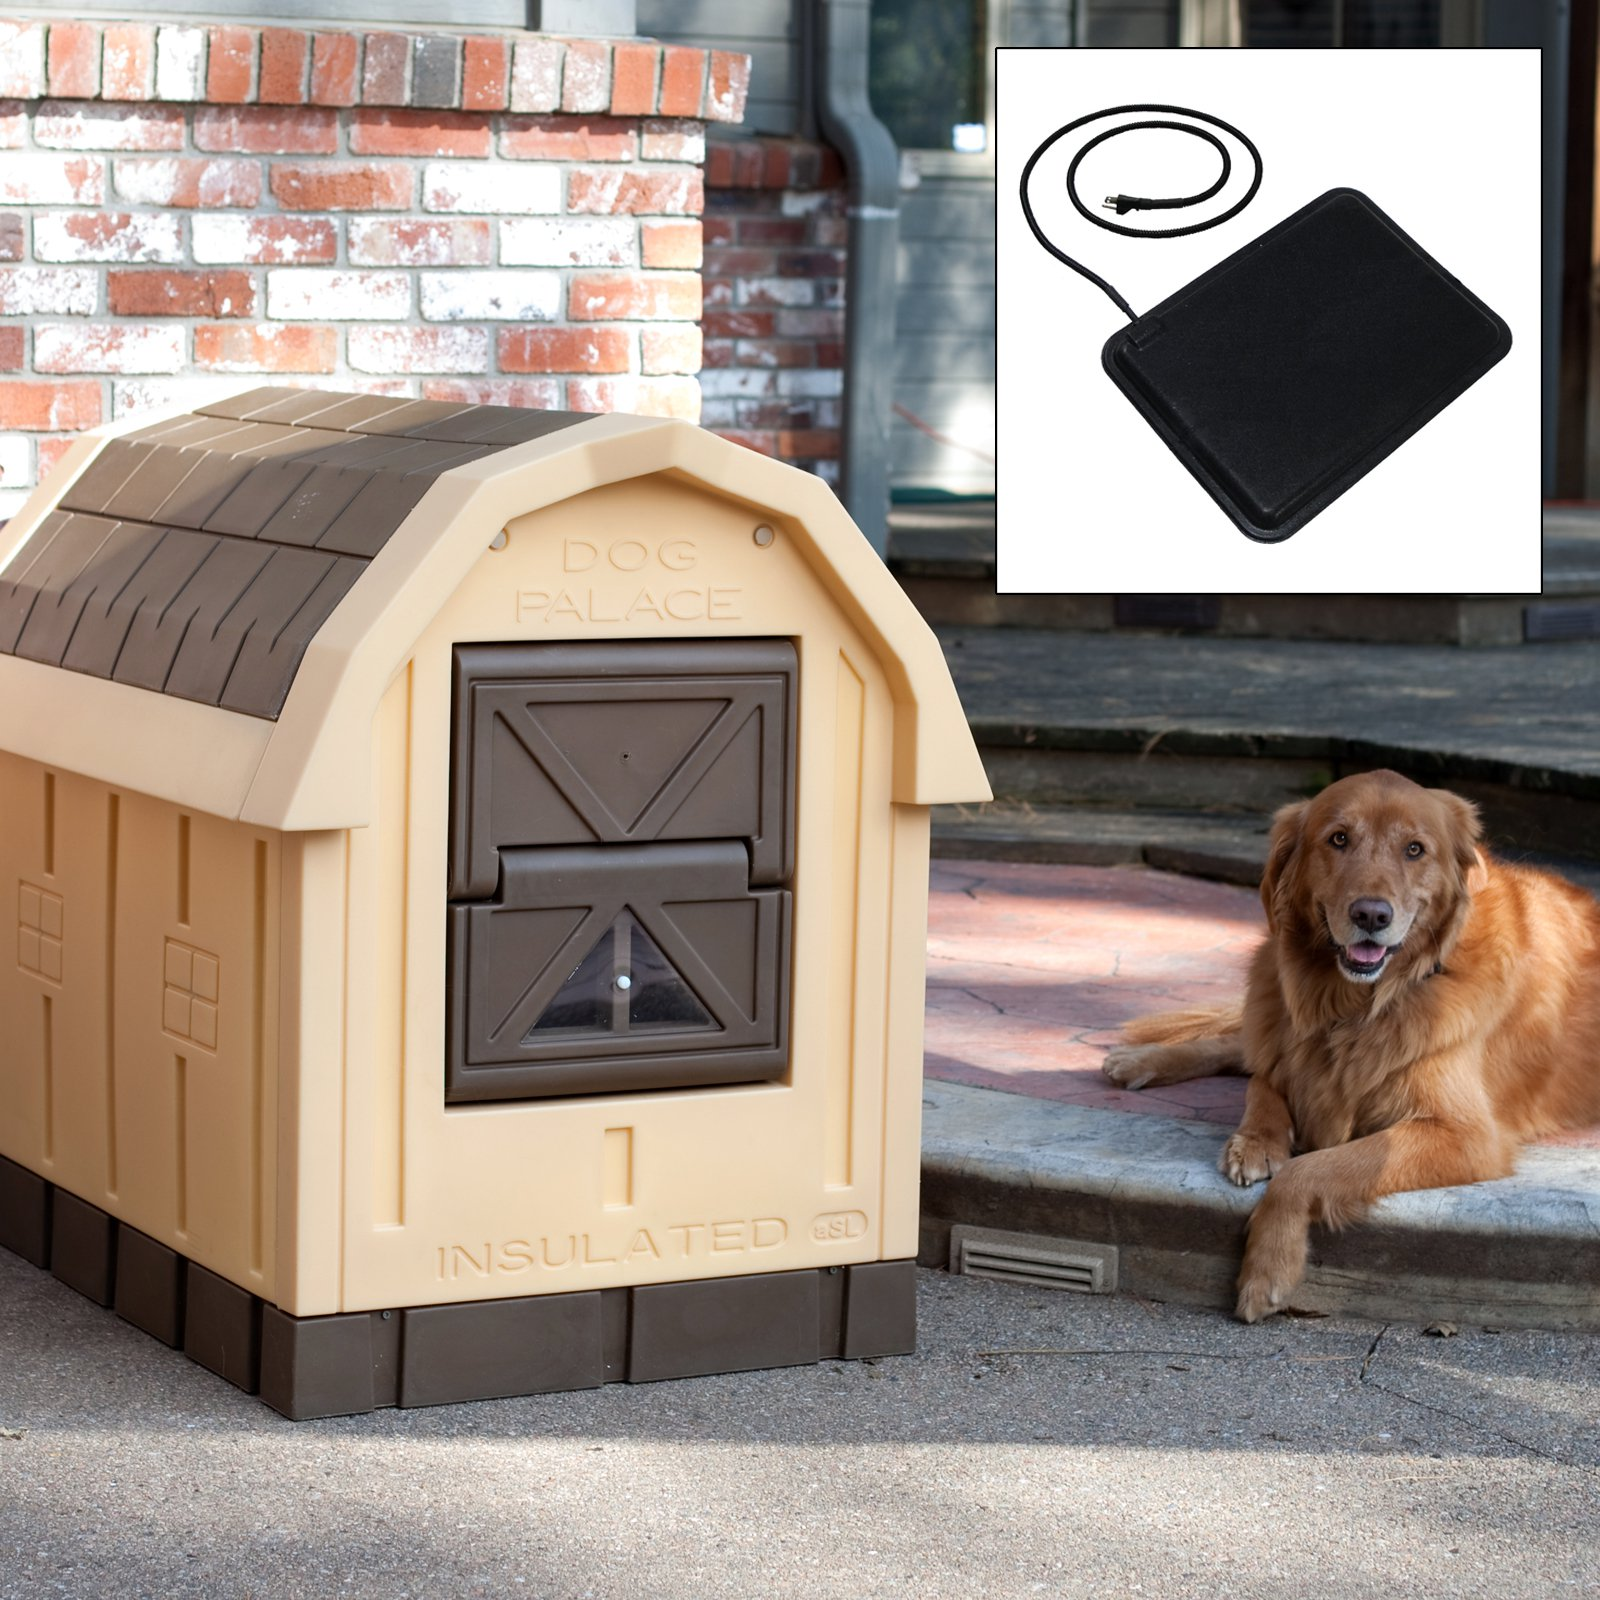 Asl Solution Dog Palace Dog House with Floor Heater